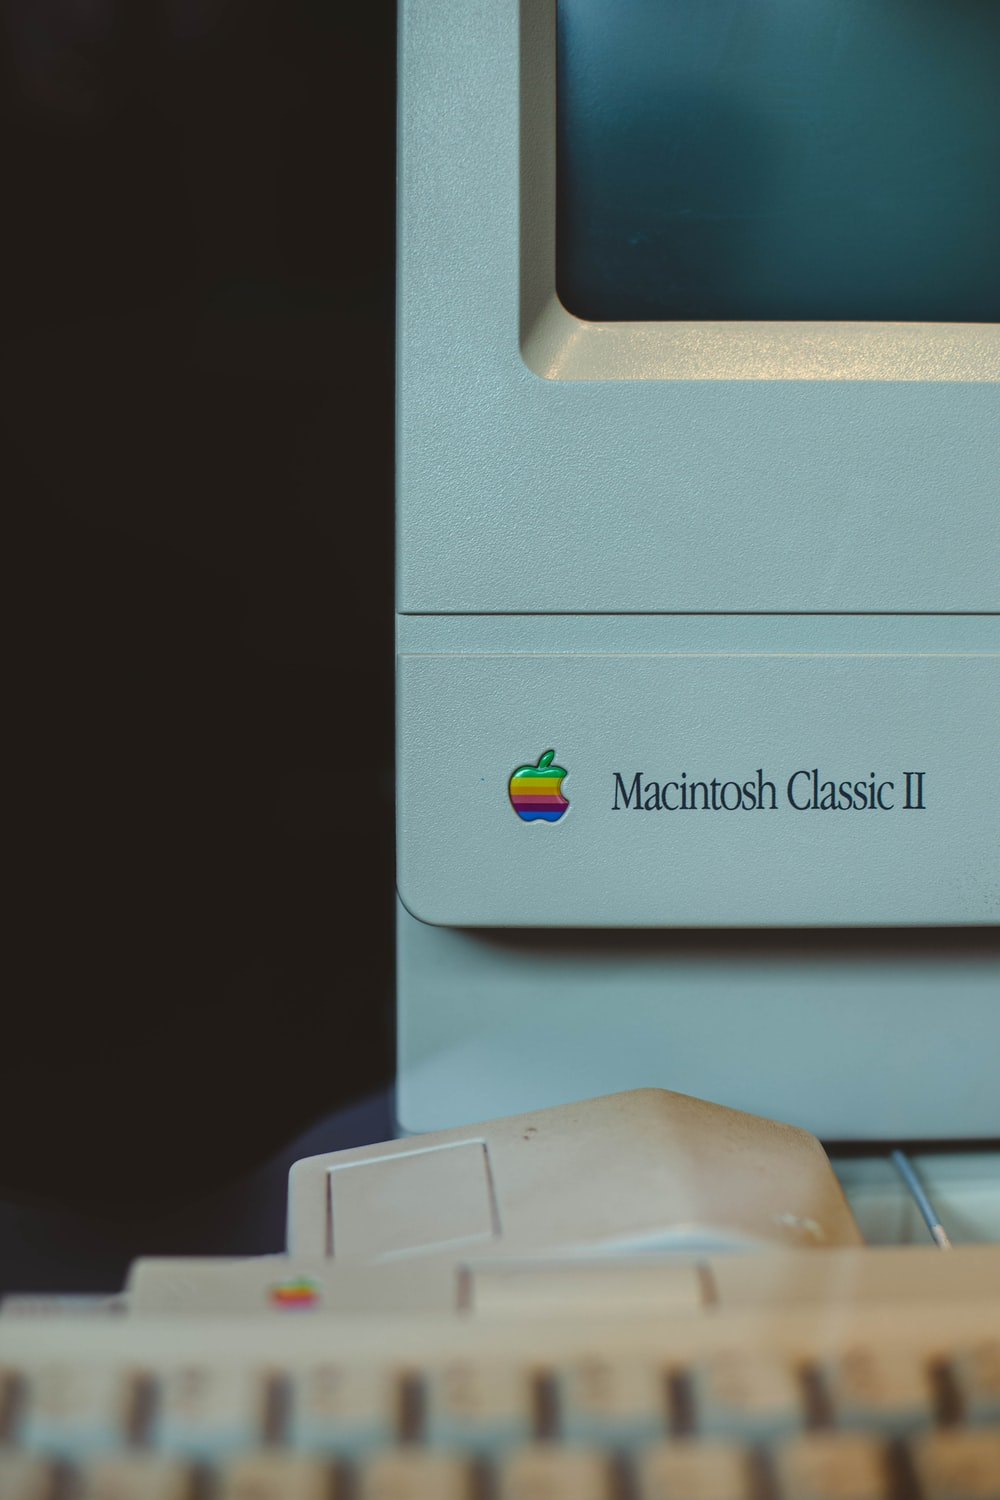 white Apple Macintosh classic II monitor